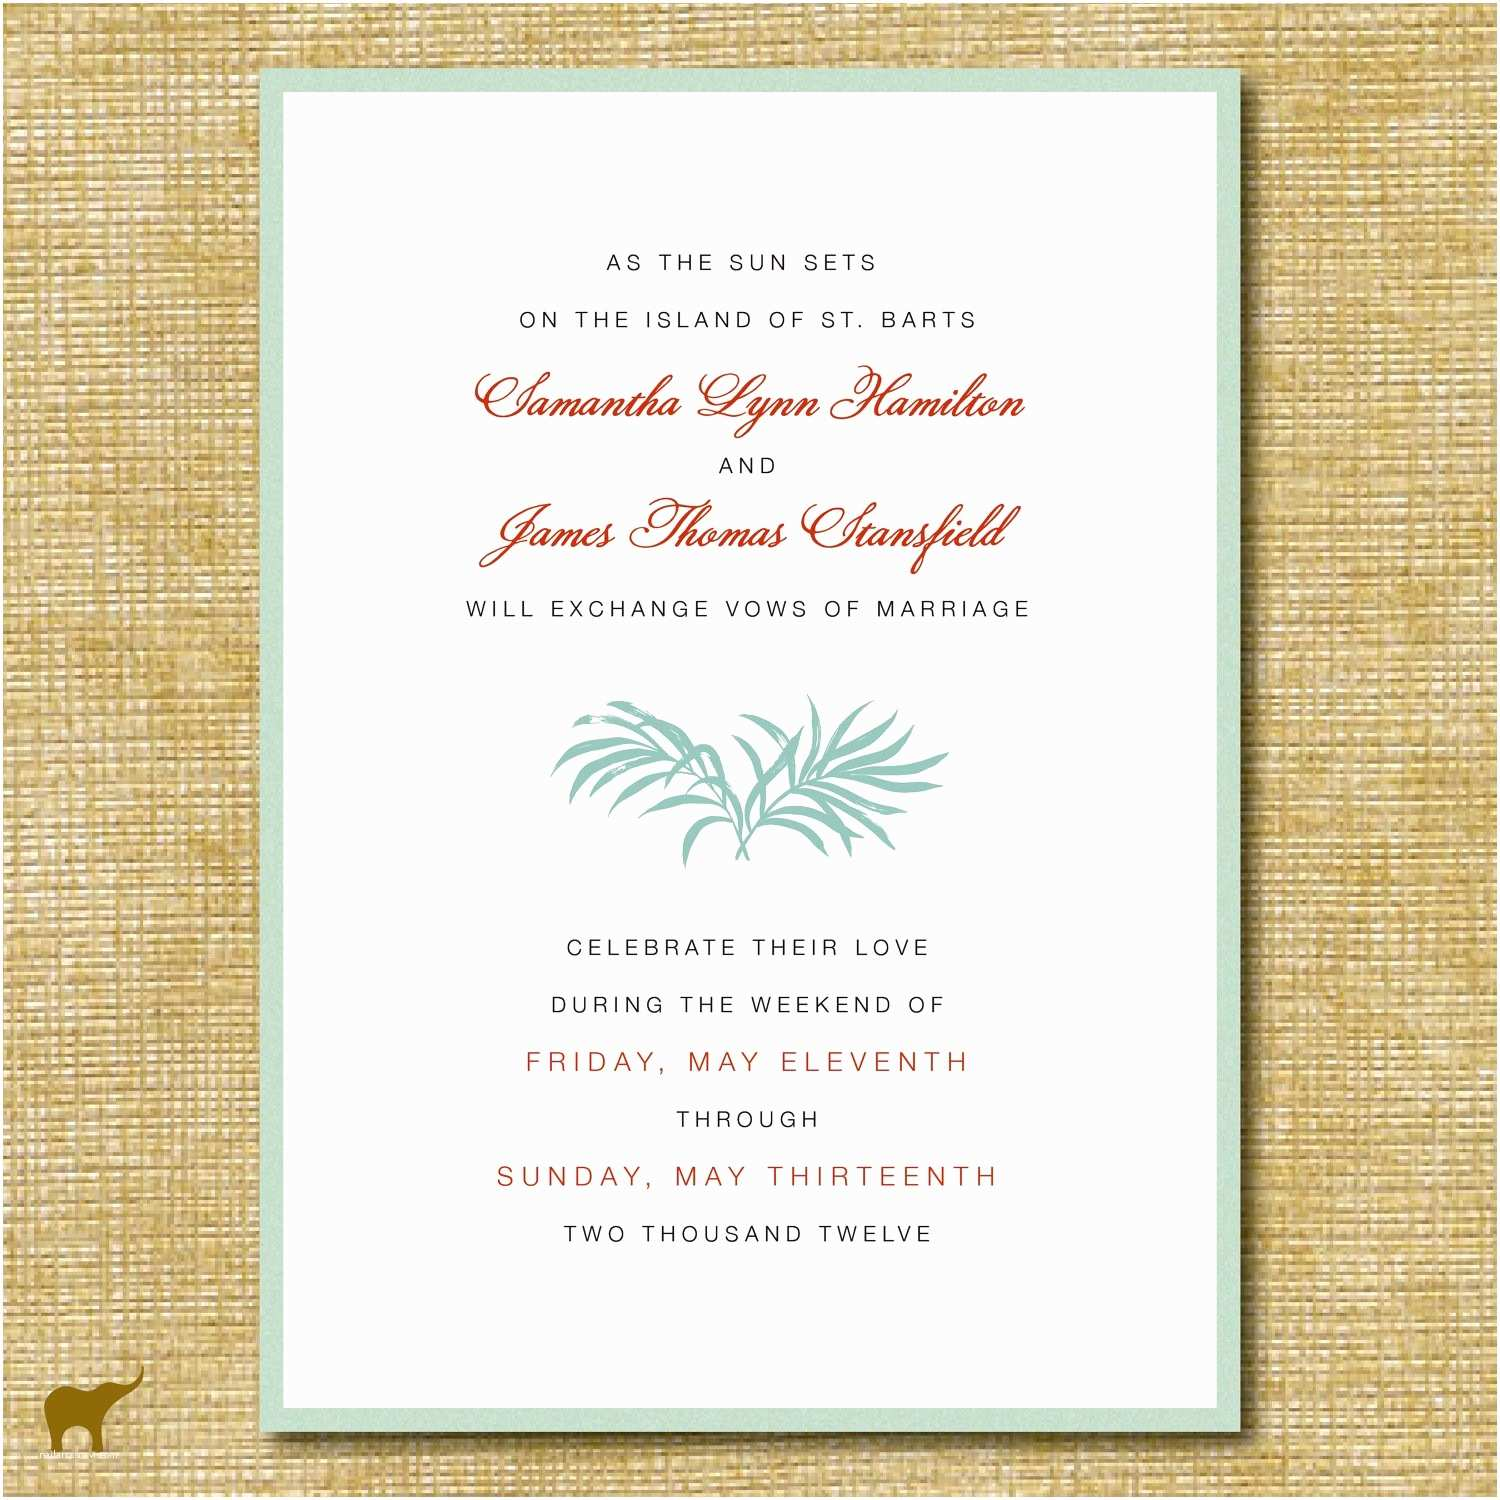 Reception Invites After  Wedding Best Invitation Wording For Party After